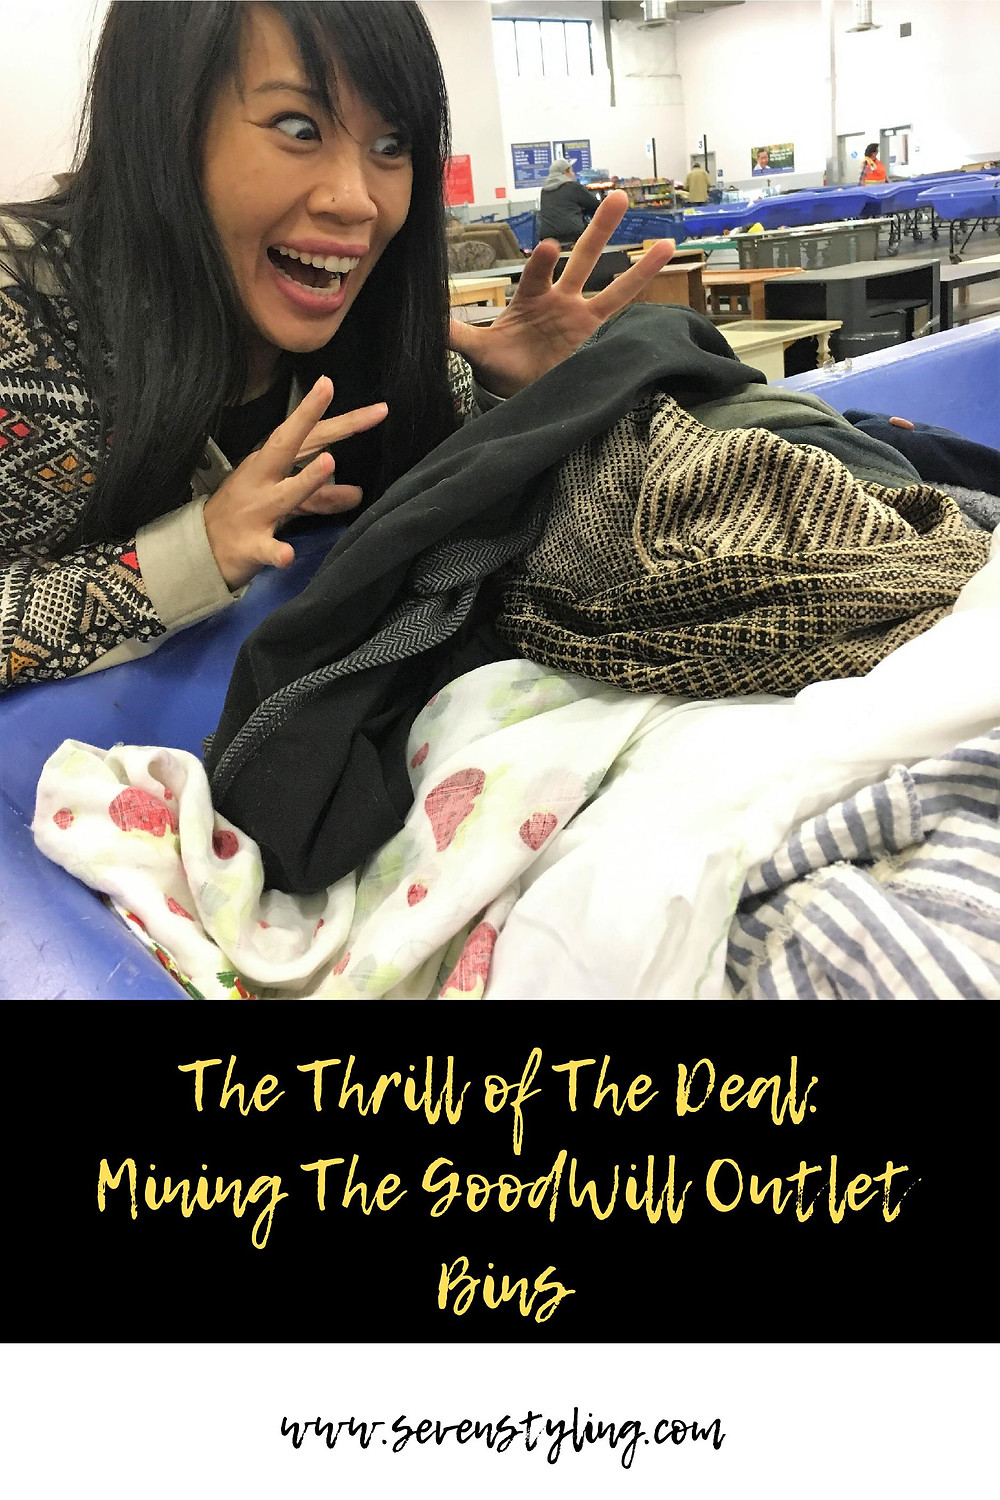 The Thrill of The Deal: Mining The Goodwill Outlet Bins